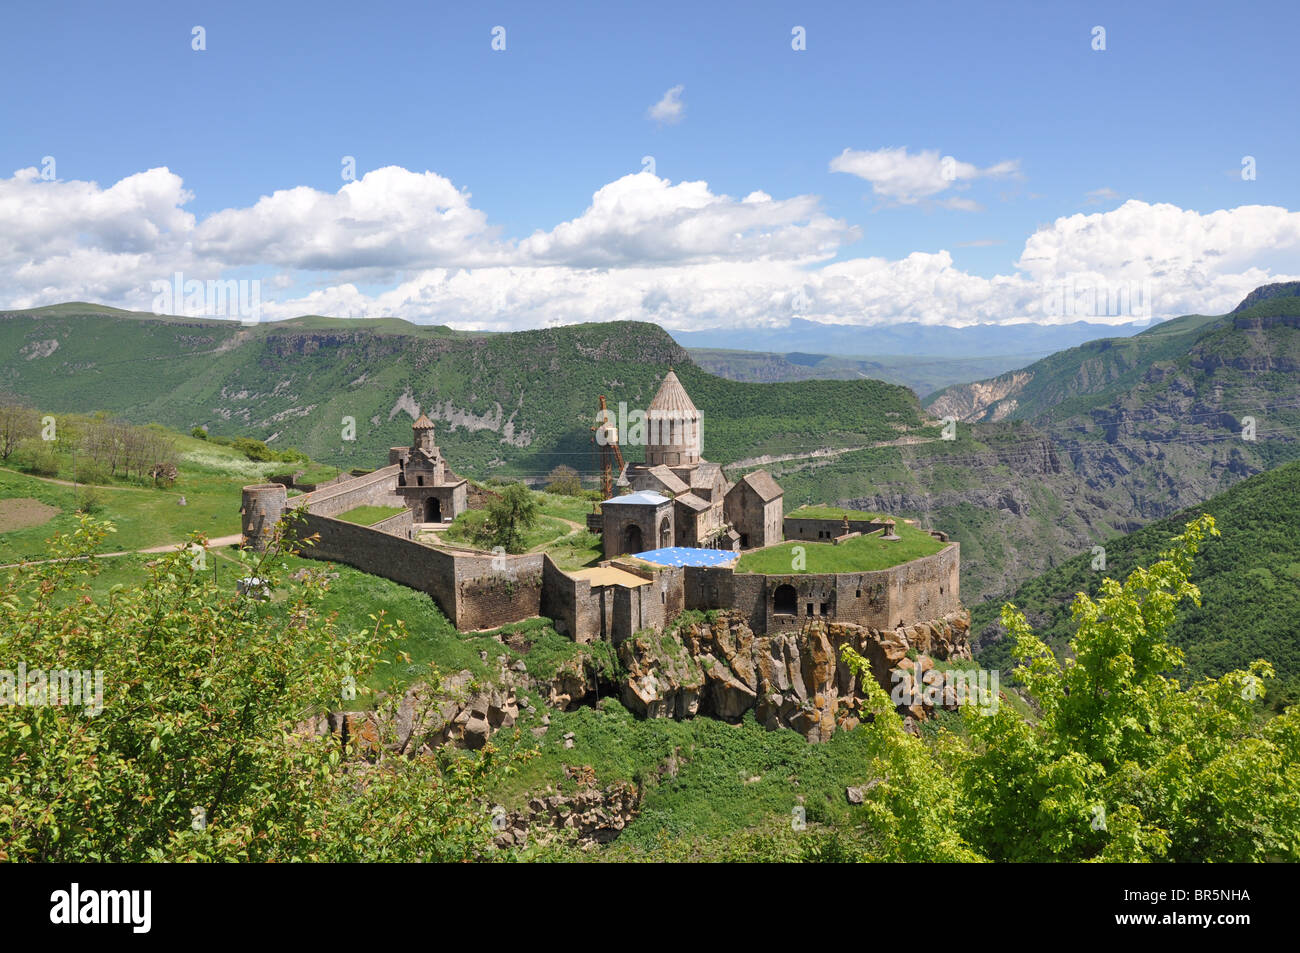 Tatev monastery in Southern Armenia seen from above - Stock Image